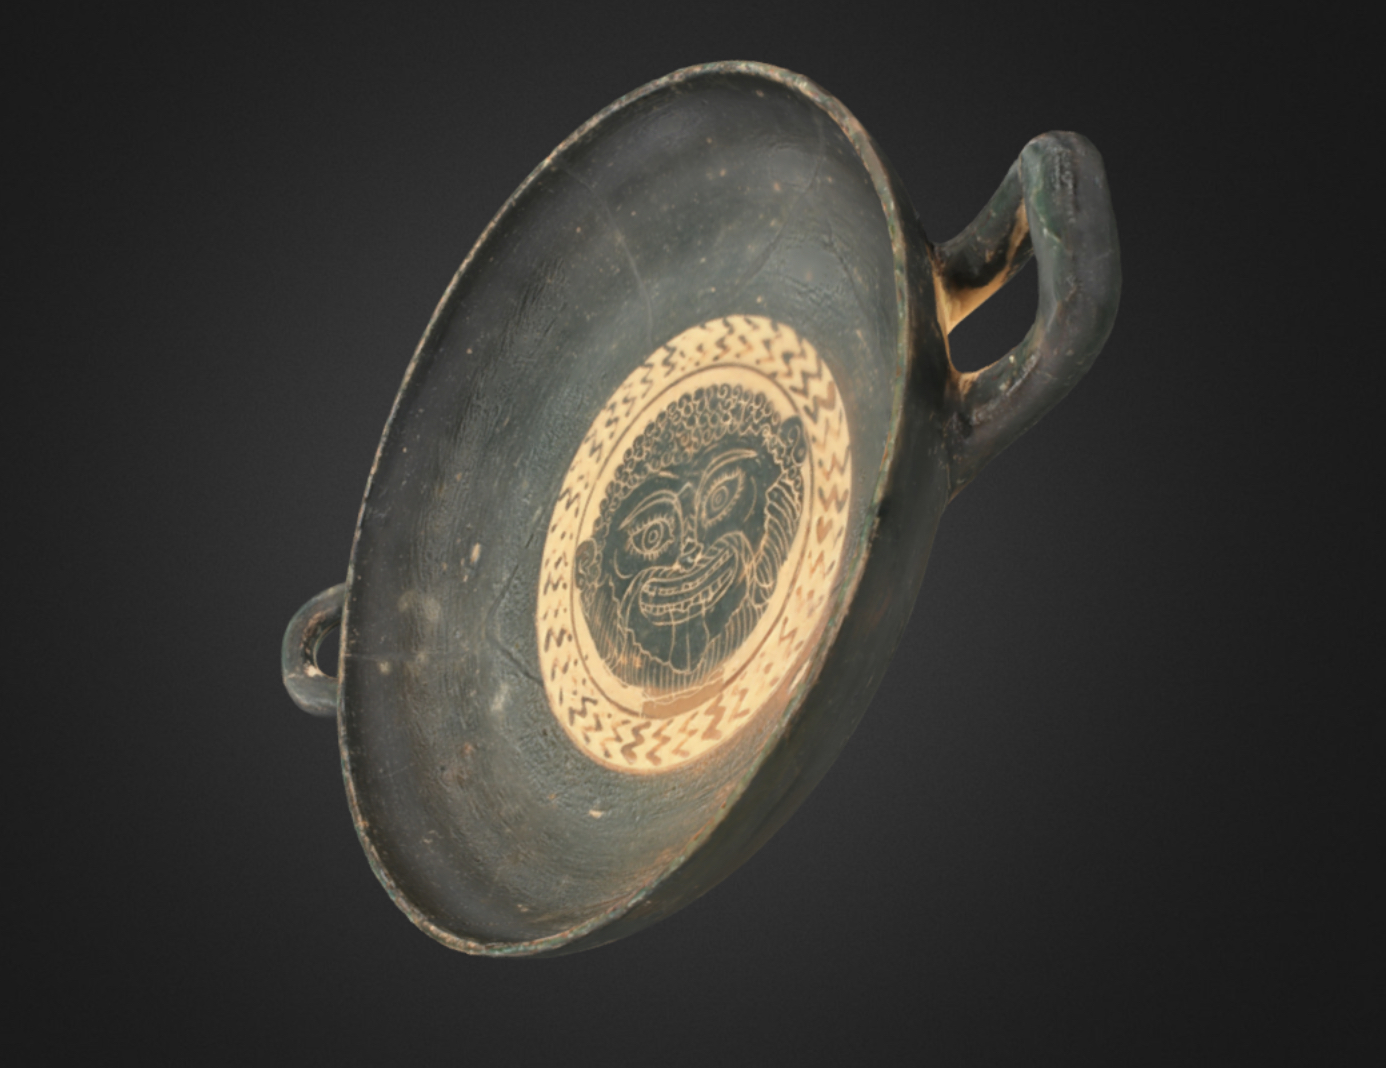 3D image of Black-Figure Kylix with Gorgon Head